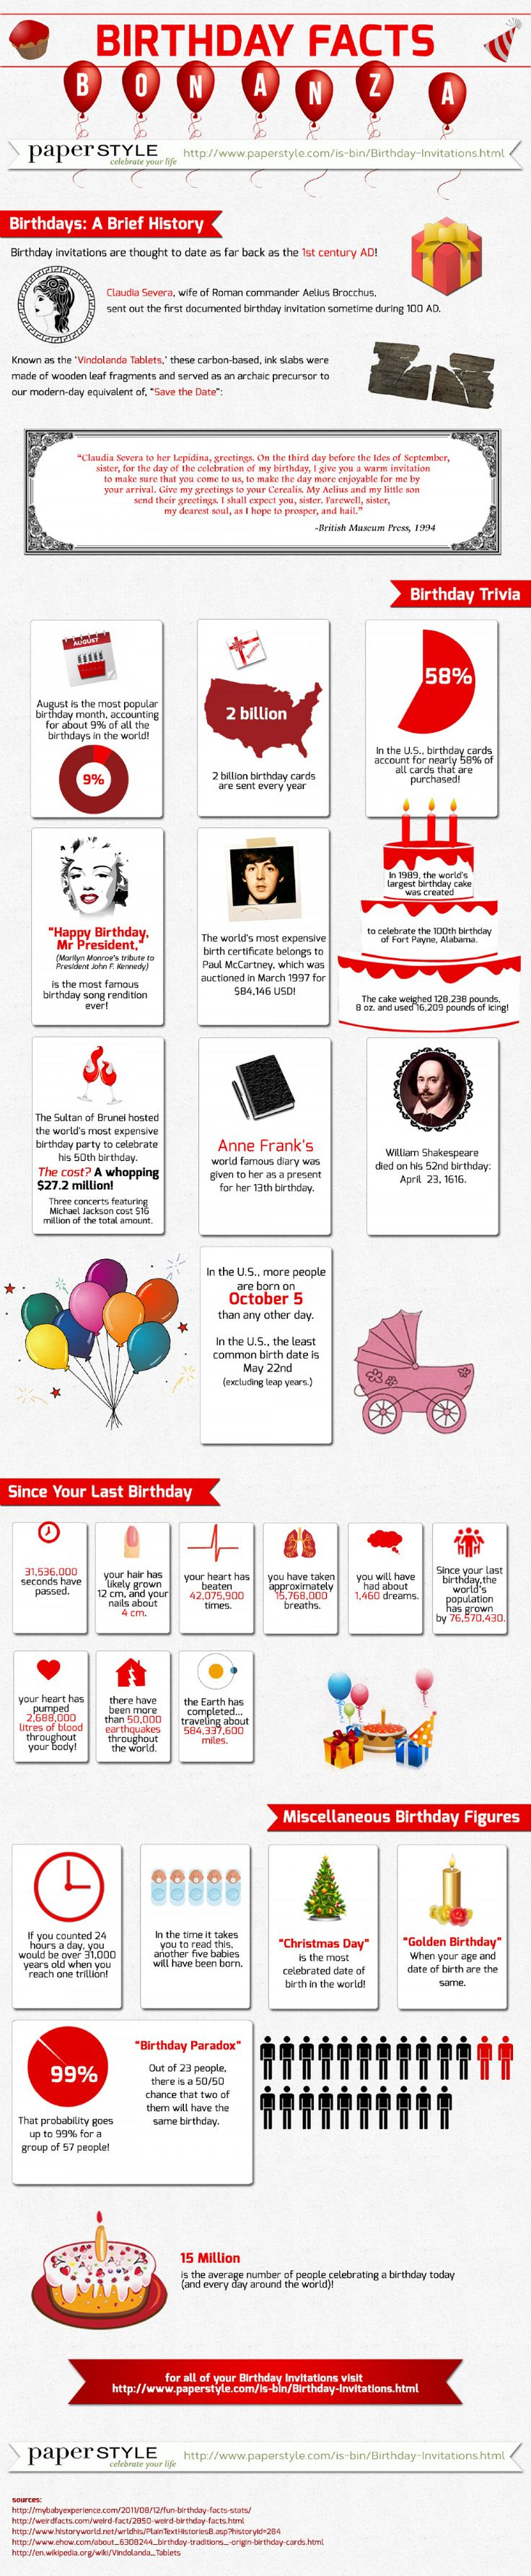 In the United States, the most popular day for birthdays is October 5th. In the United States, the least common date for a birthday is May 22nd, excluding the leap years. Since your last birthday alone, the world's population has grown over 76 million. The following collection of witty birthday card sayings are both humorous